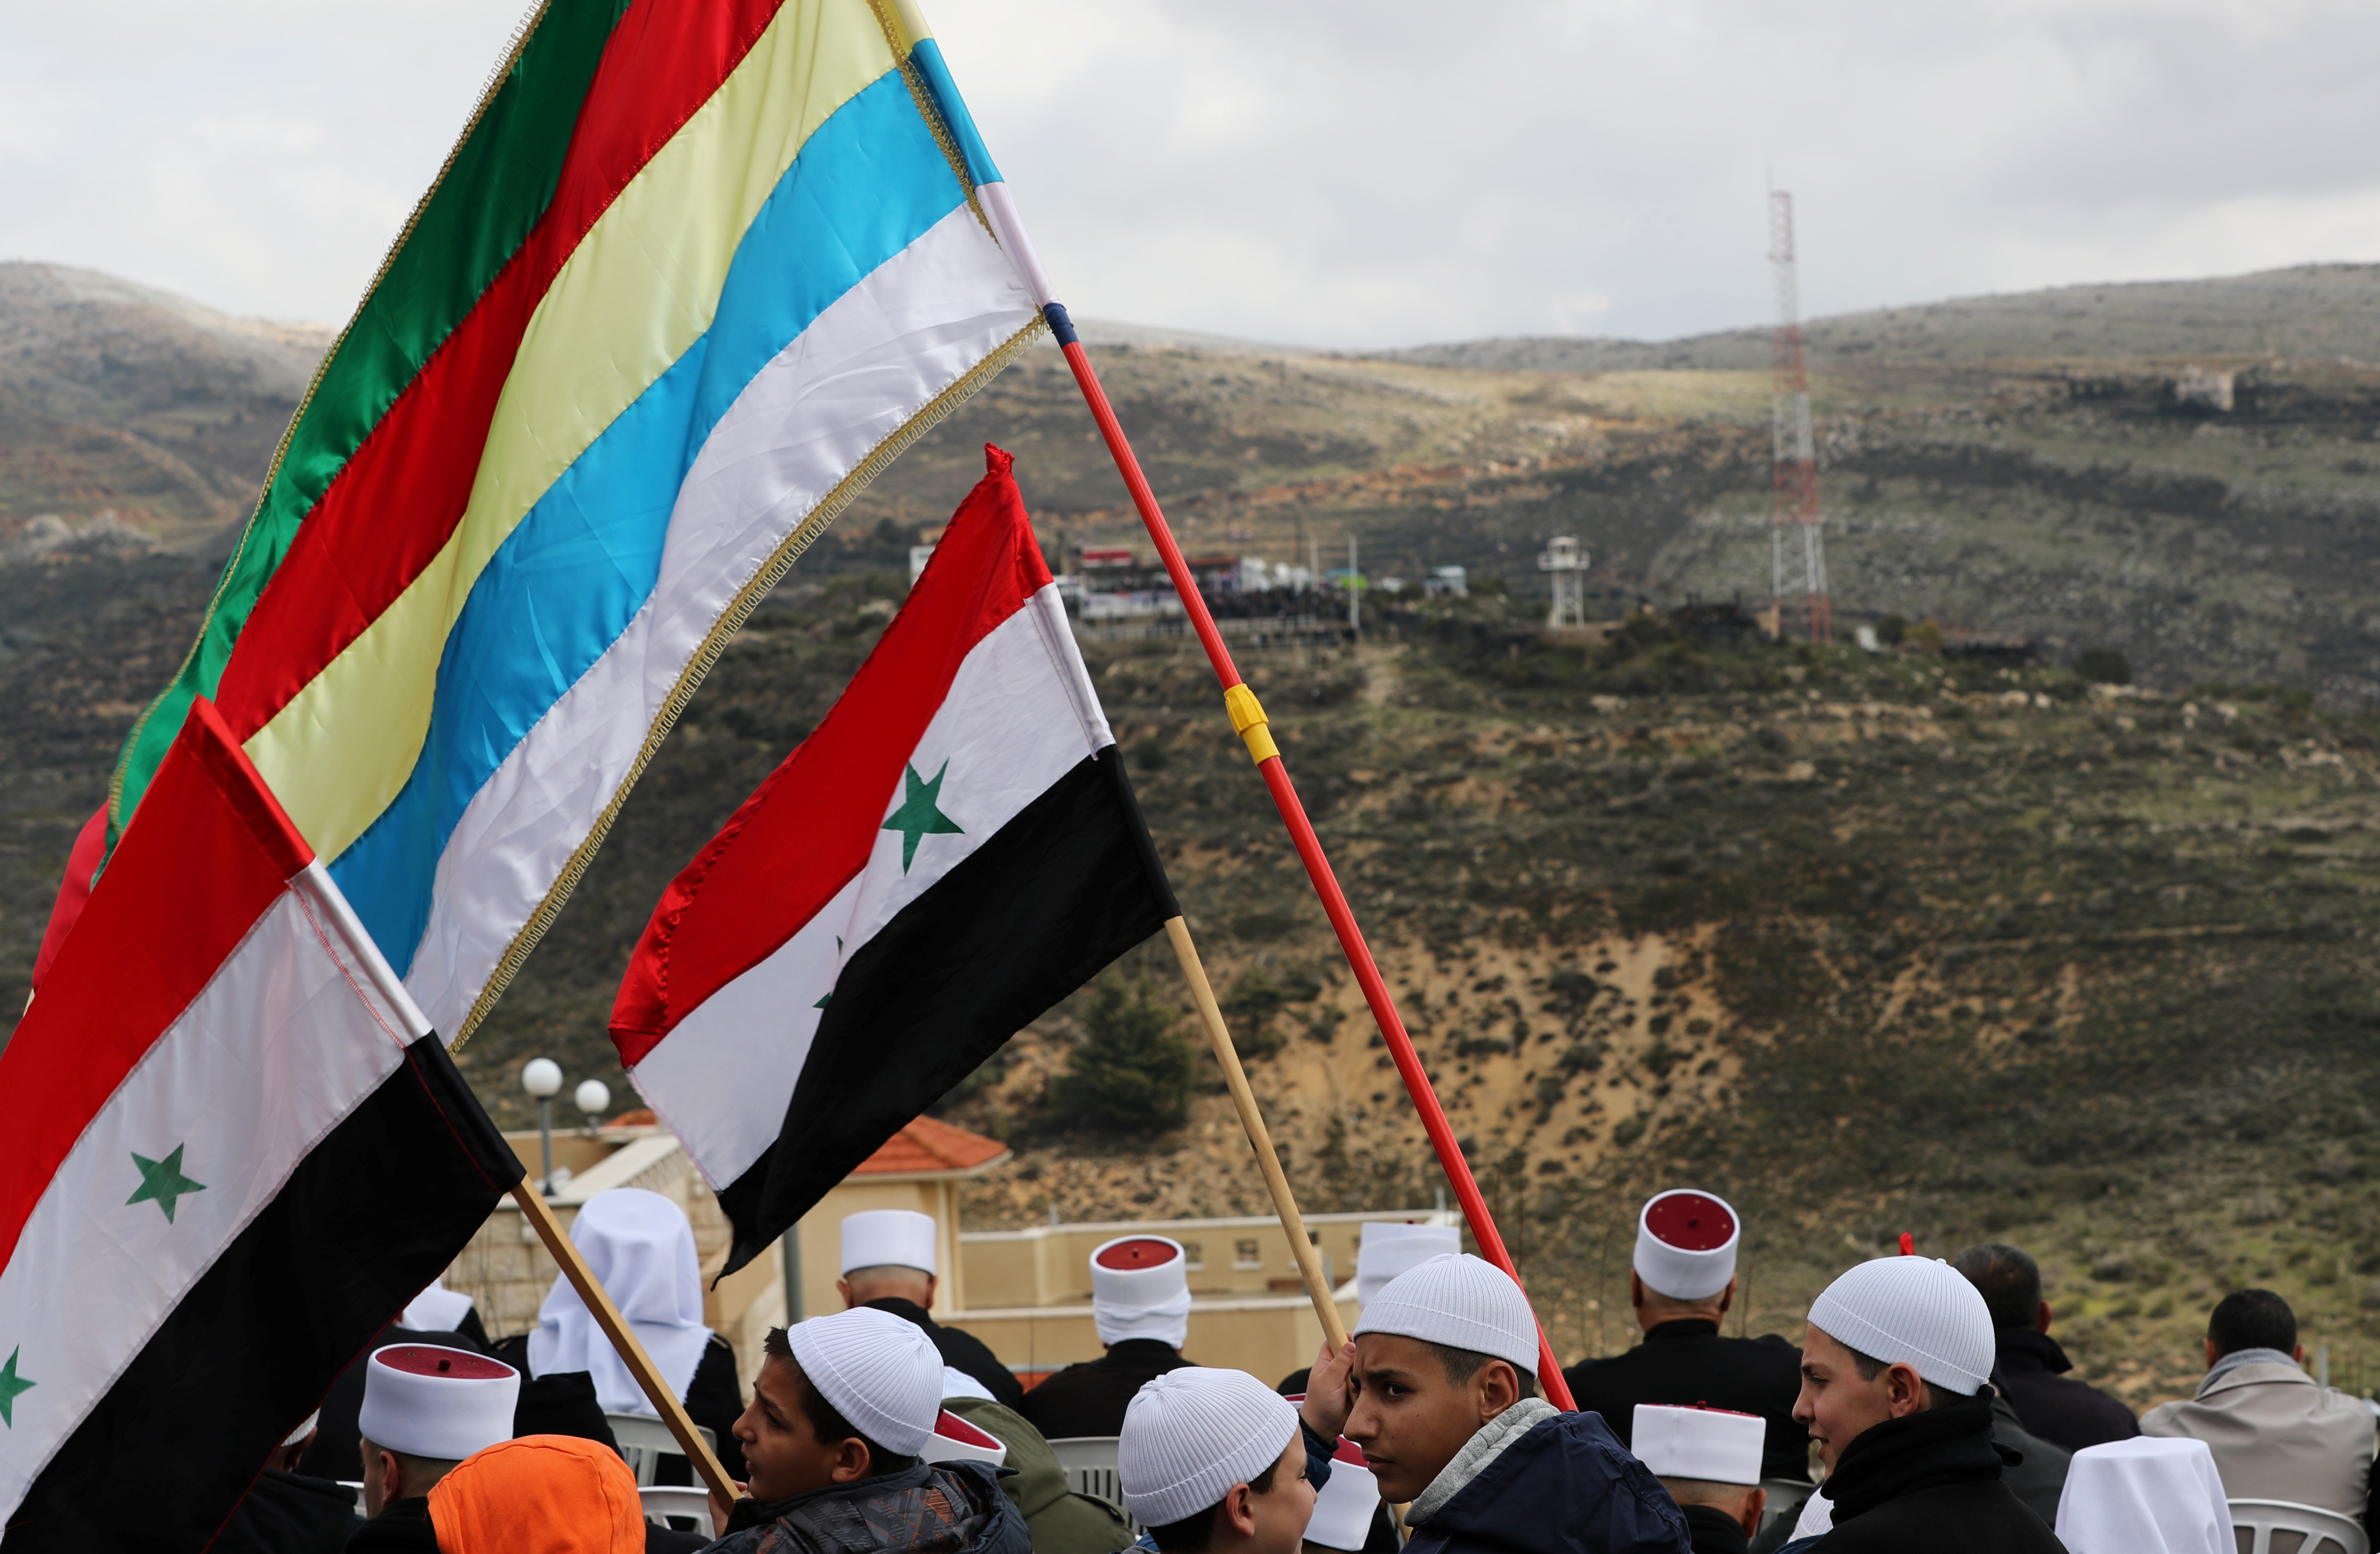 Members of the Druze community holds Syrian and Druze flags during a rally marking the anniversary of Israel's annexation of the Golan Heights on 14 February (REUTERS)